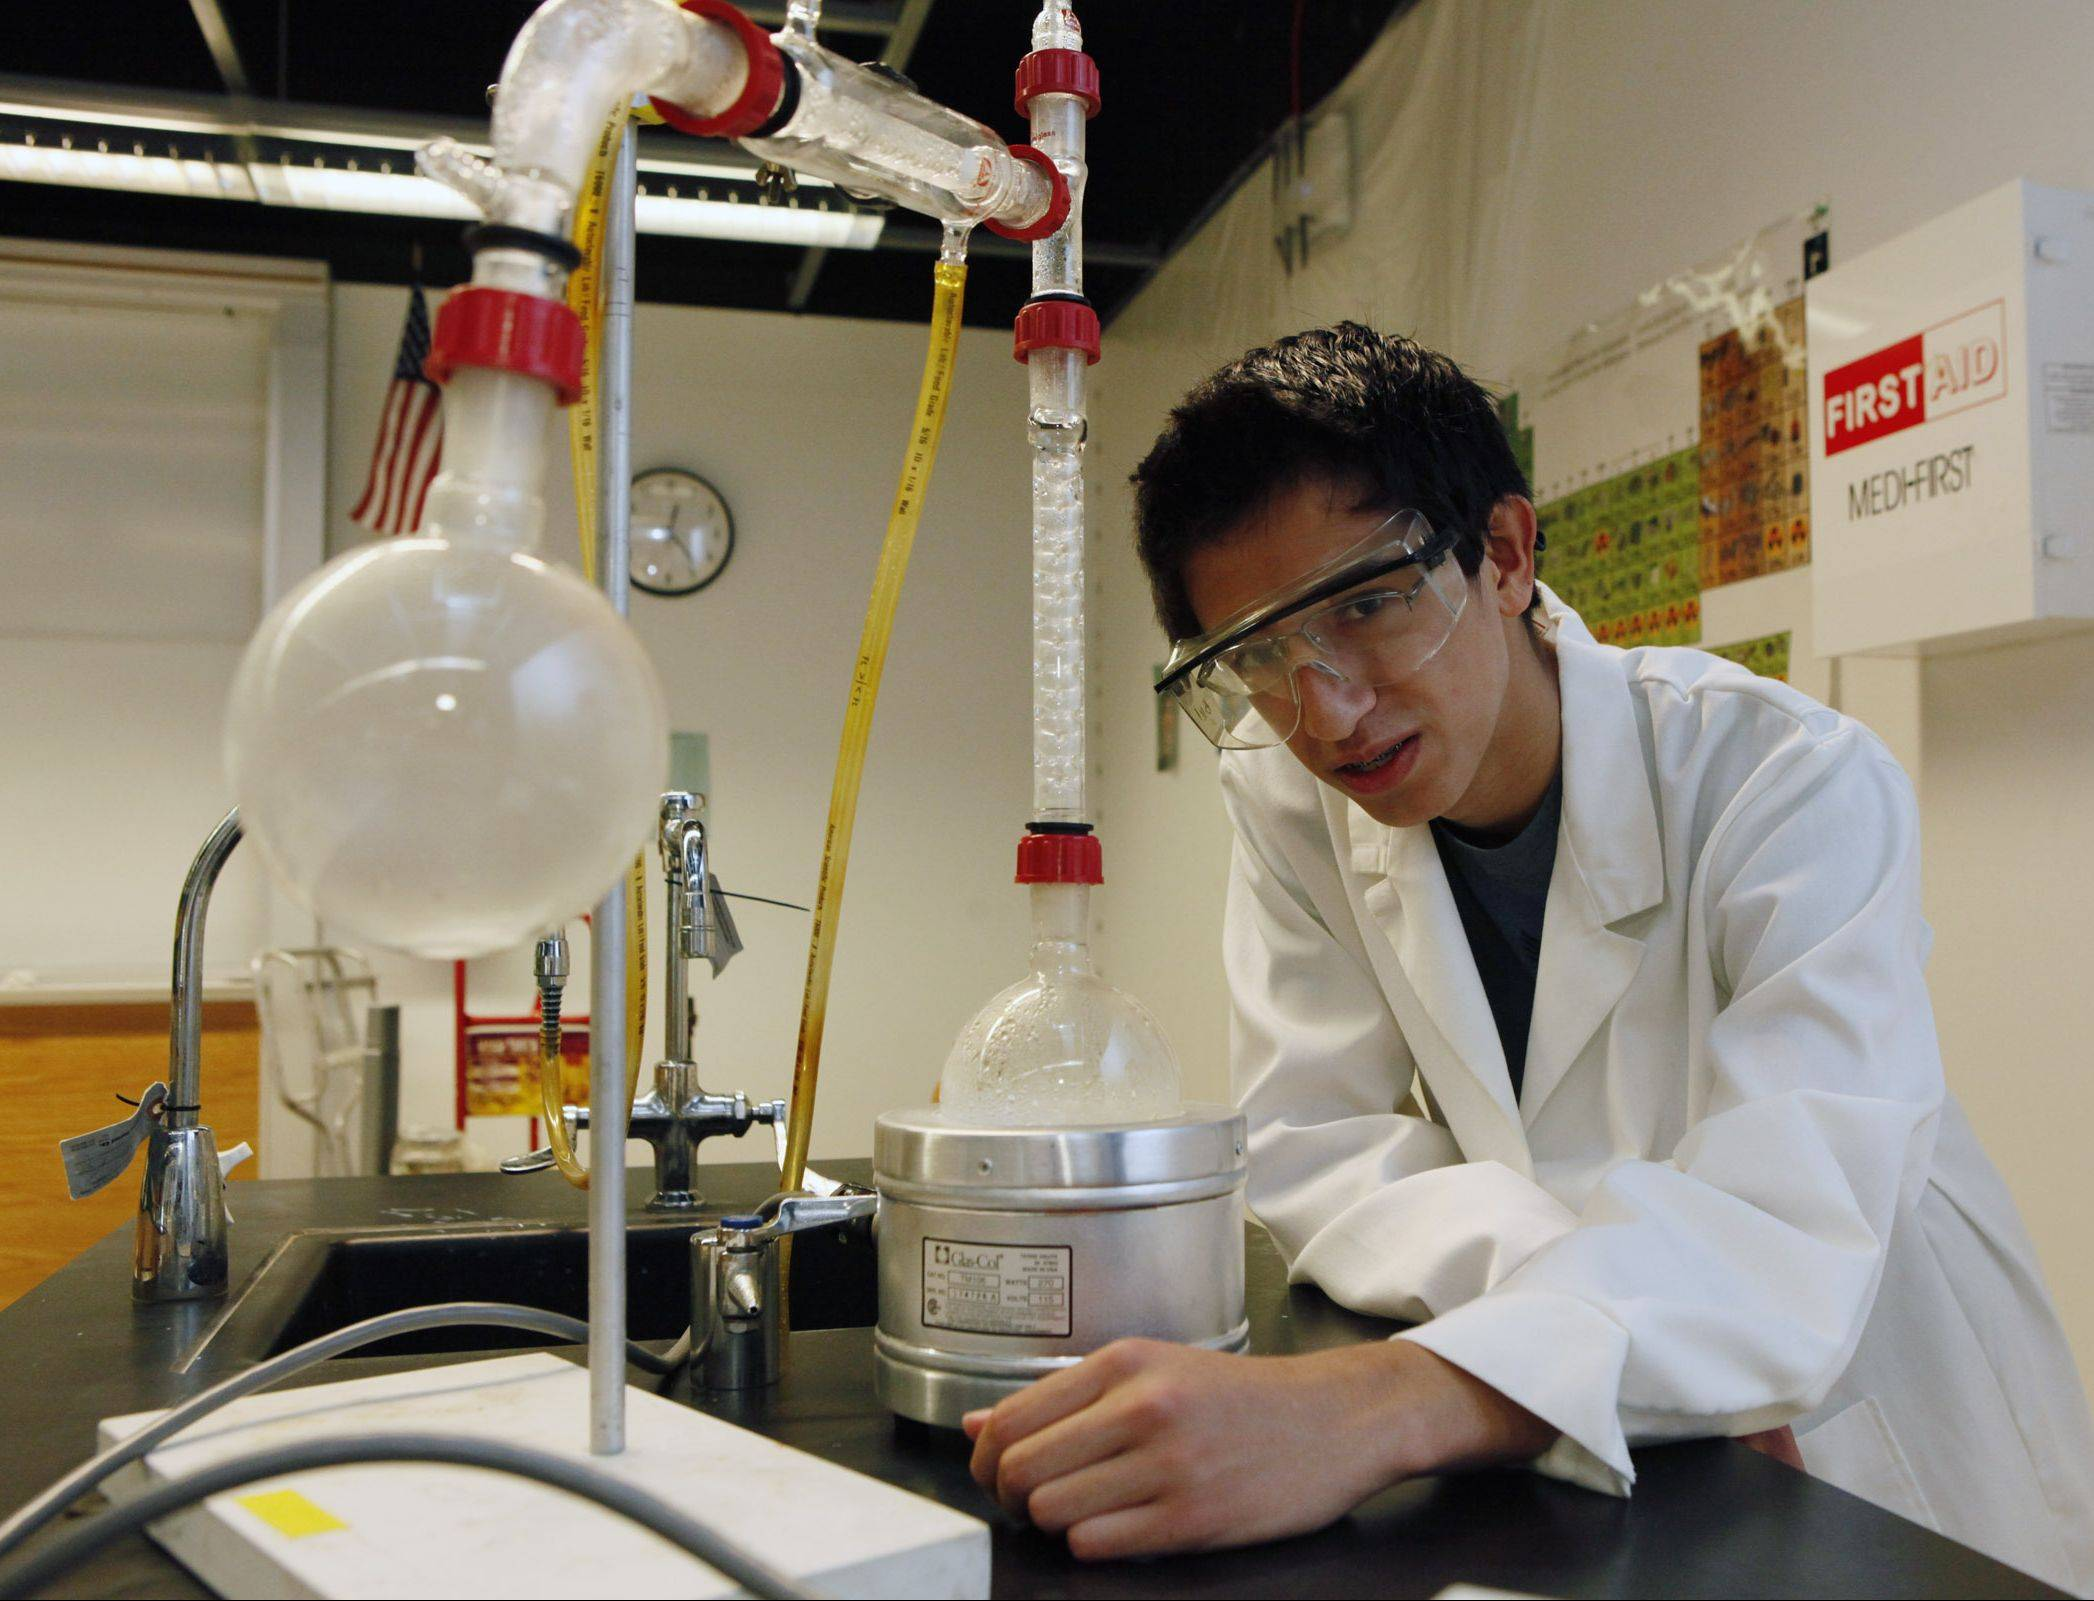 Nolan Maloney, an incoming senior at the Illinois Mathematics and Science Academy, works on a fractional distillation experiment.